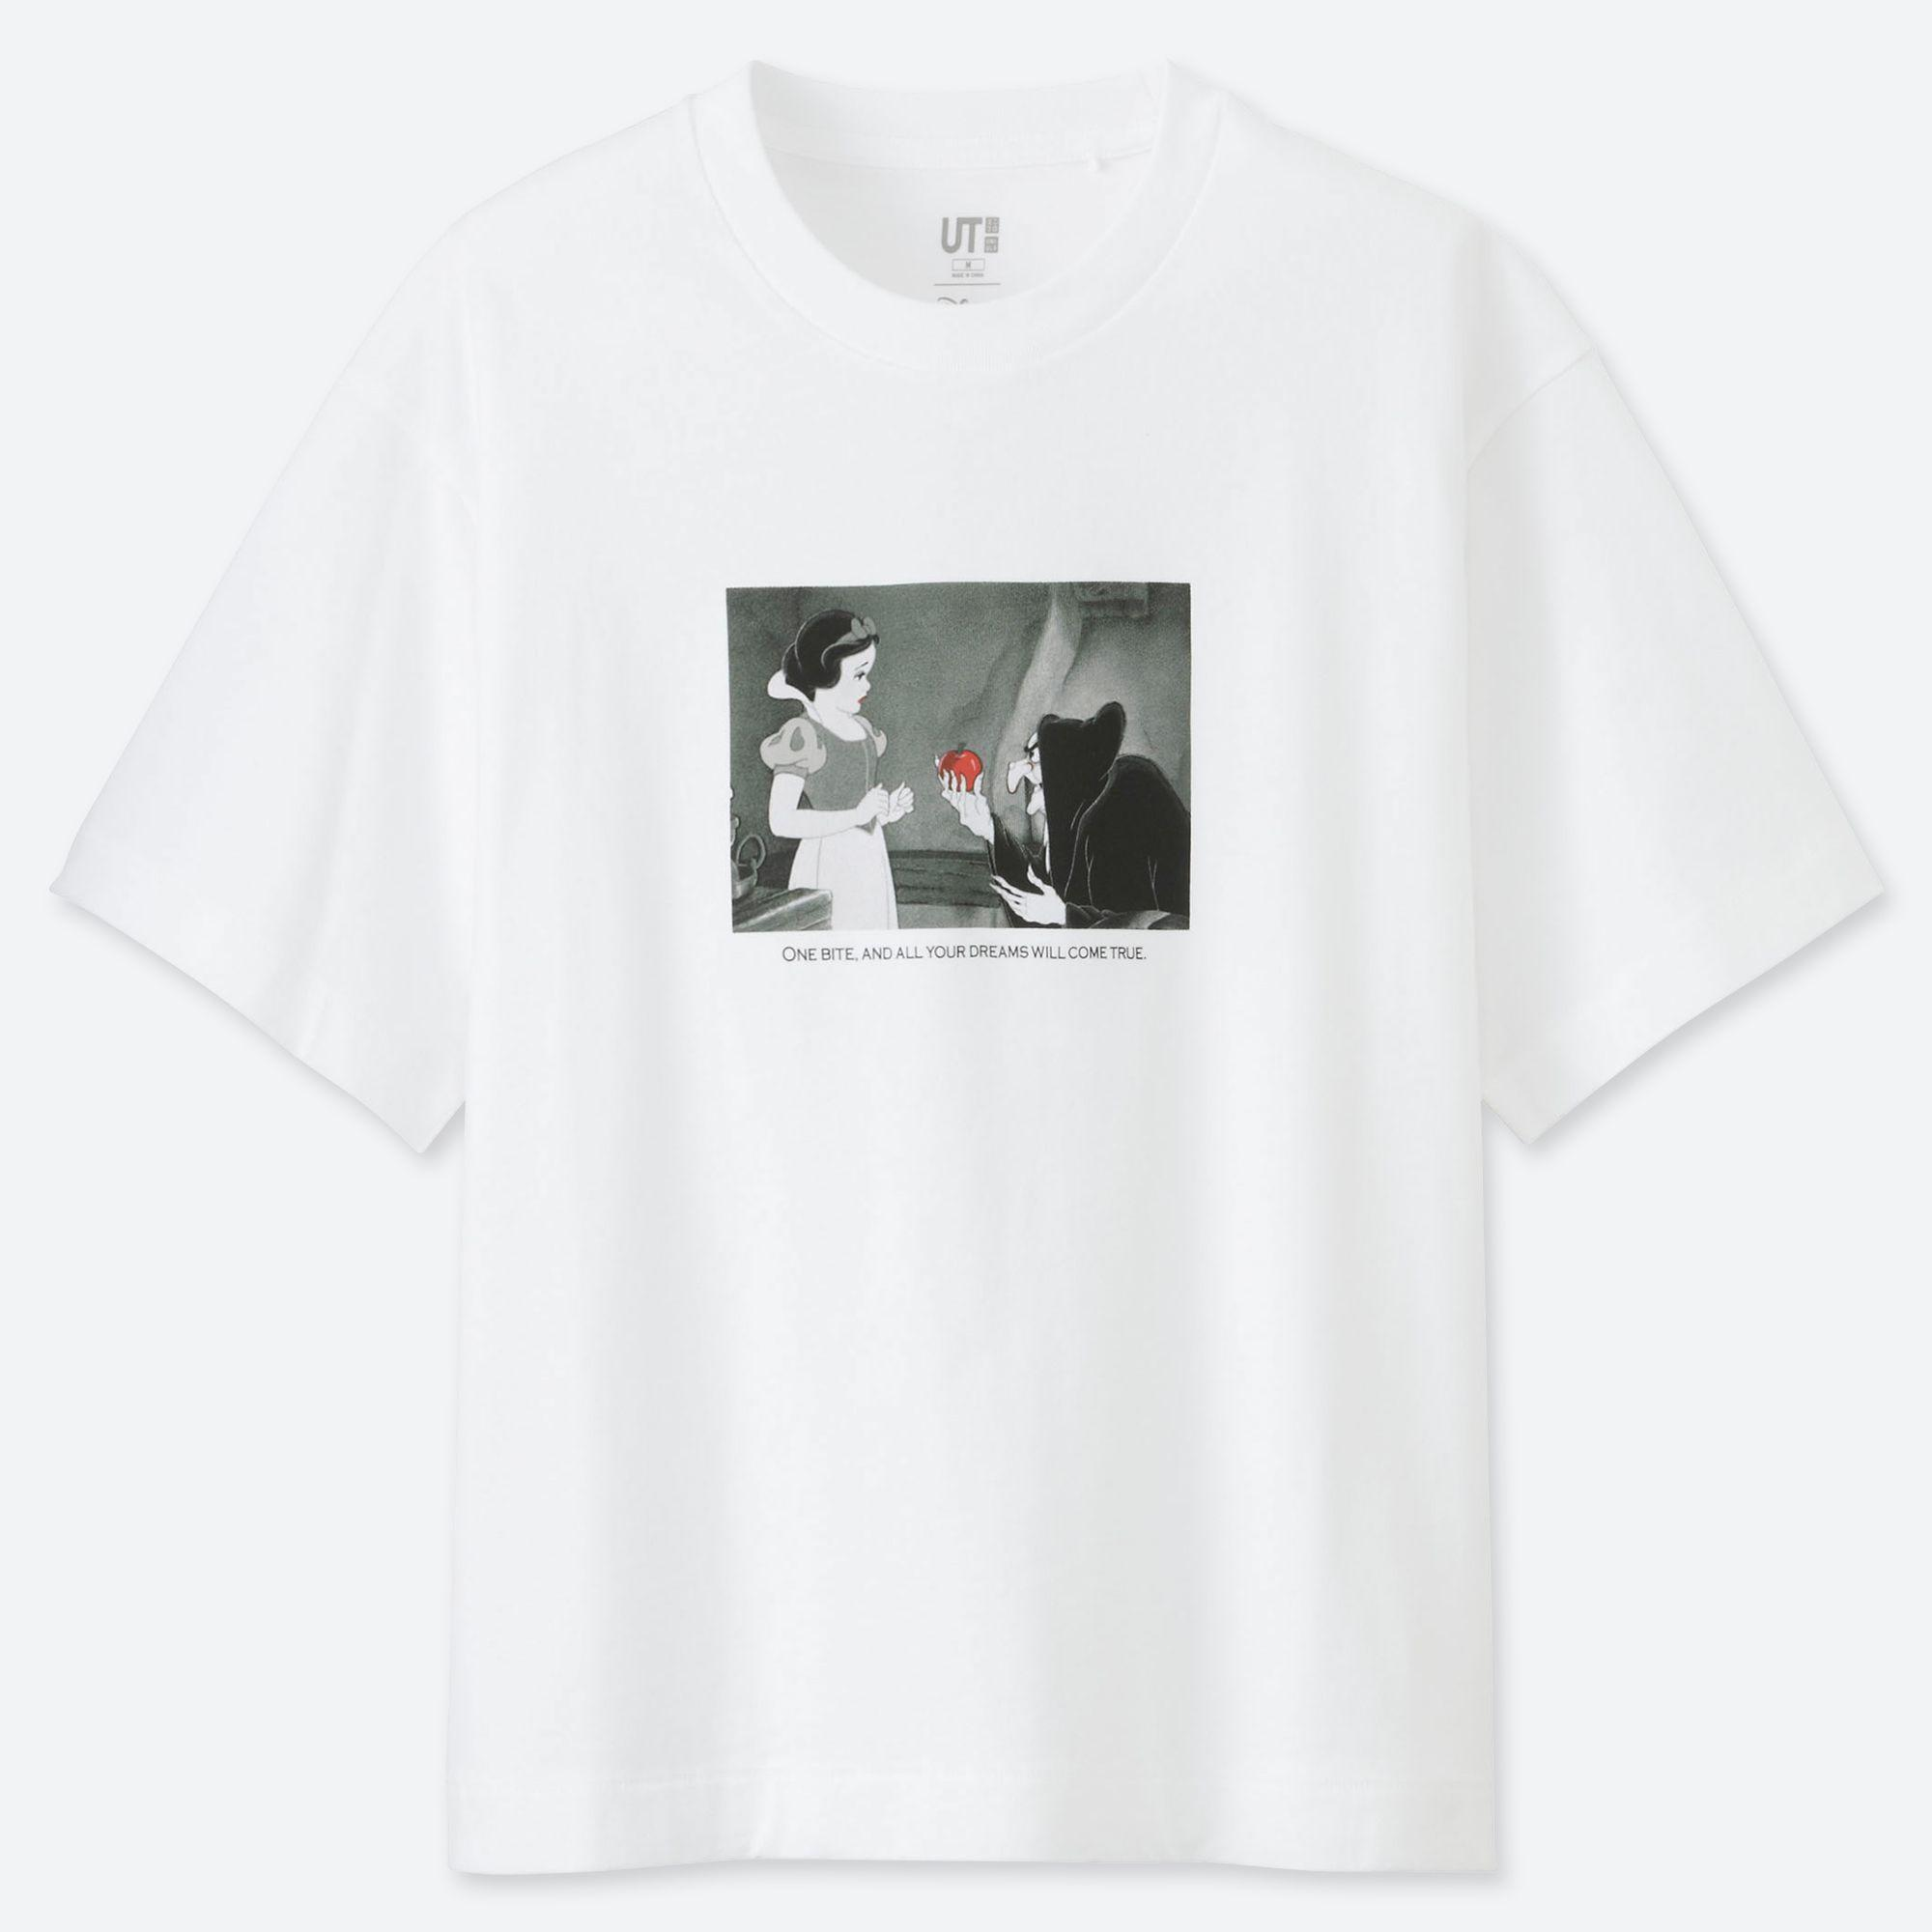 0e87f23d0 Uniqlo Women Princess Way Short-sleeve Graphic T-shirt in White - Lyst